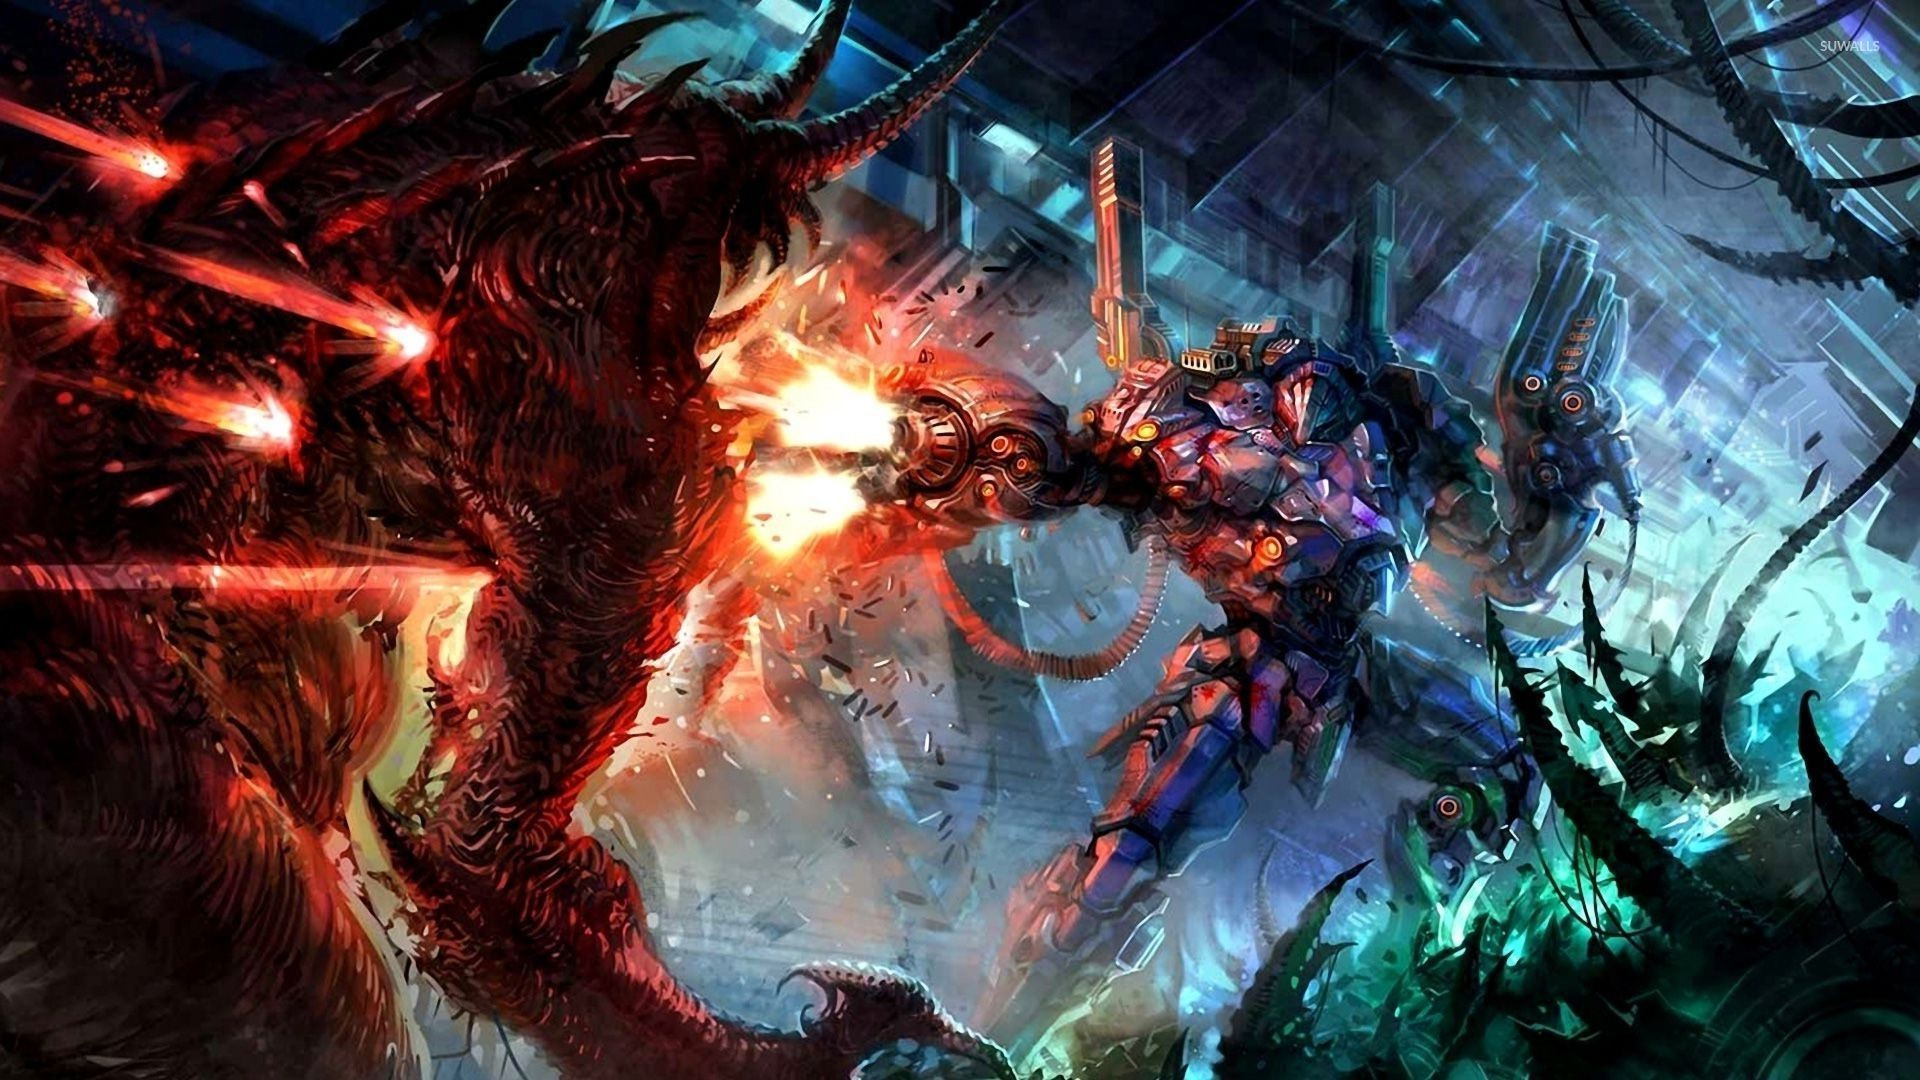 Res: 1920x1080, Scary demon in hell wallpaper - Fantasy wallpapers - #54038